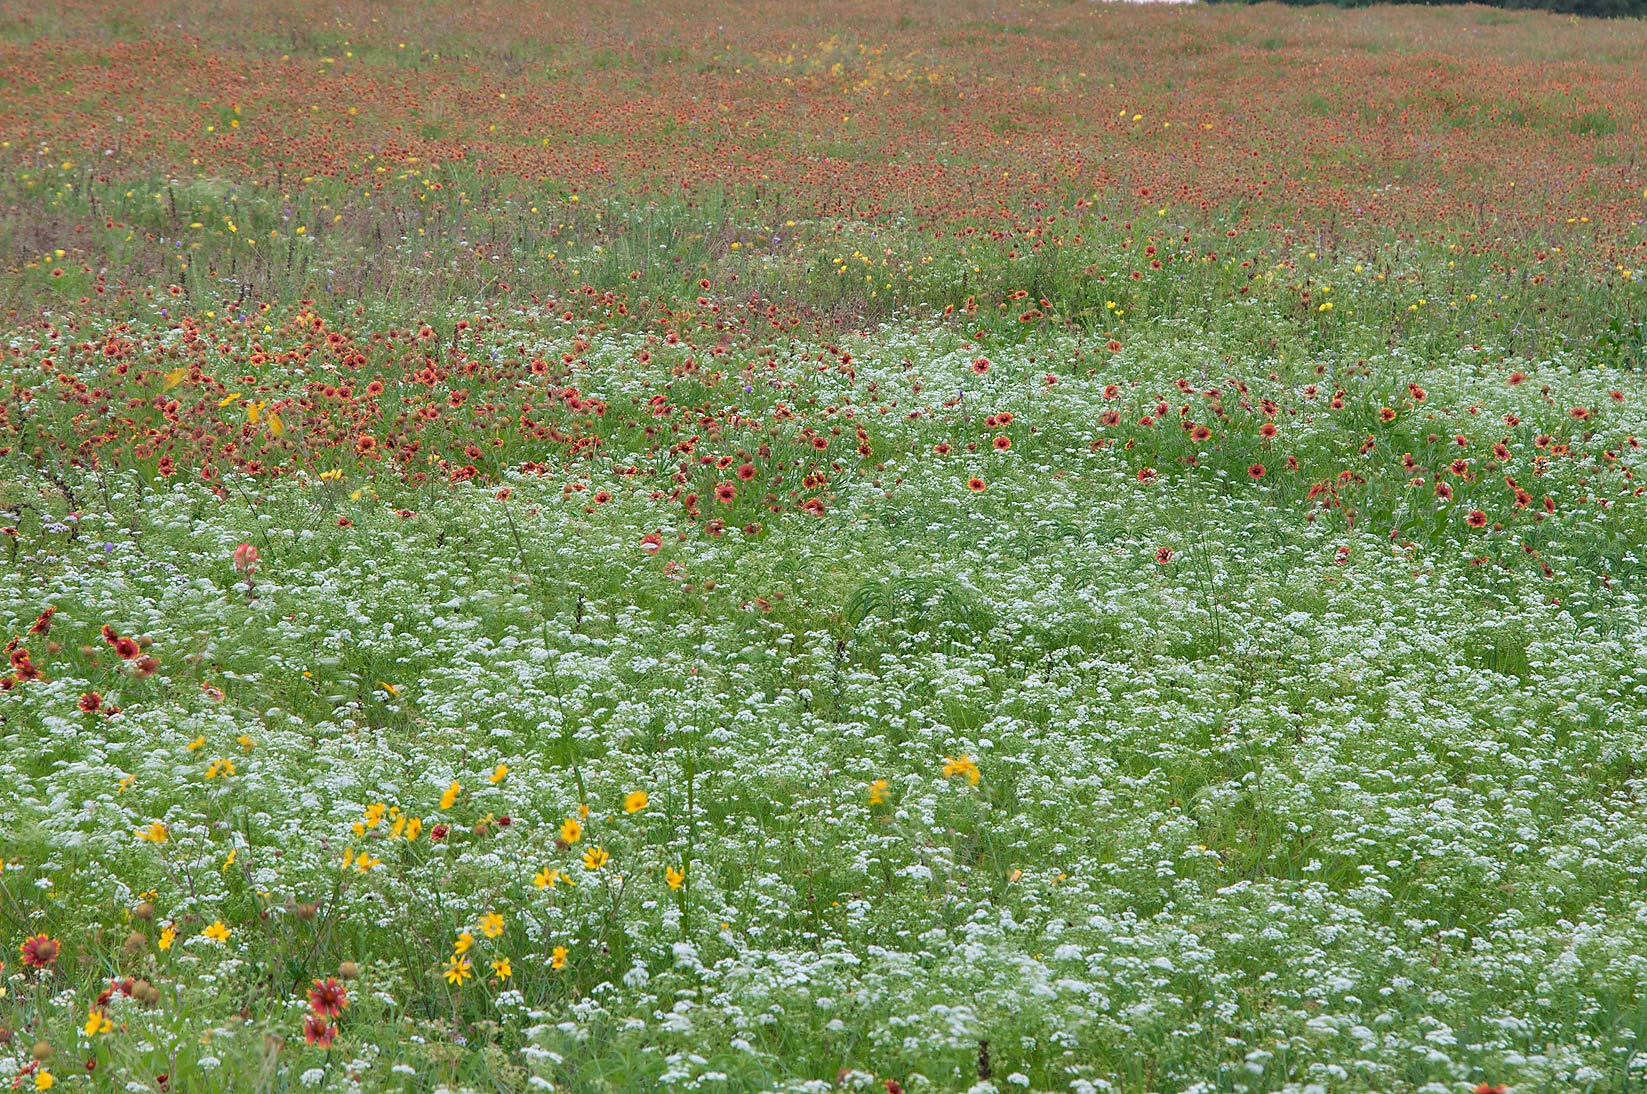 Field of flowers near Rd. FM 390 south from Lake Somerville. Texas